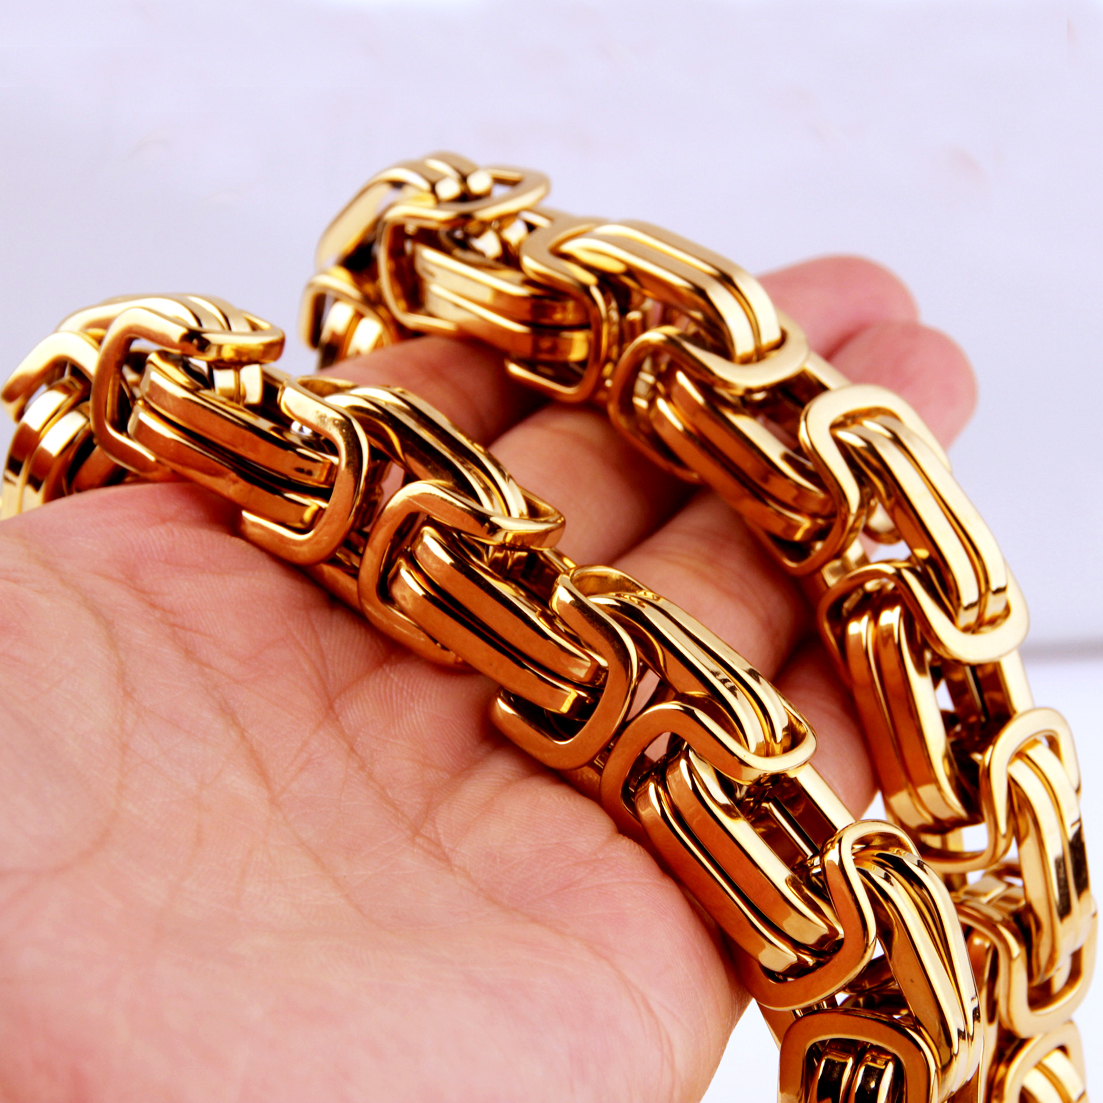 Customized Size 7 40 quot 8 12 15MM Huge Heavy 316L Stainless Steel Silver Gold Byzantine Chain Mens Necklace Bracelet Fashion Desig in Chain Necklaces from Jewelry amp Accessories